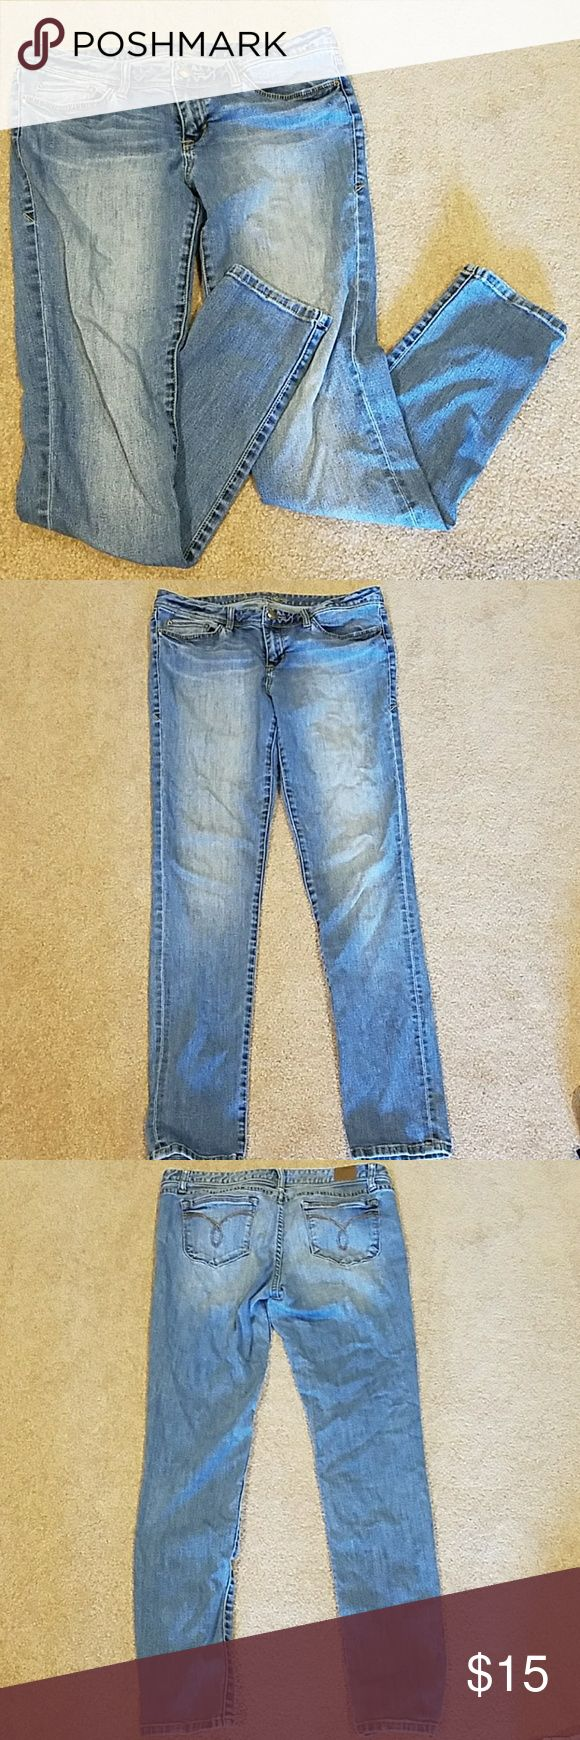 American Rag Jeans American Rag light-wash jeans, size 13 regular length. Lightly used, good condition! Very small area of loose thread on the back pocket, but otherwise in tip-top shape! American Rag Jeans Straight Leg